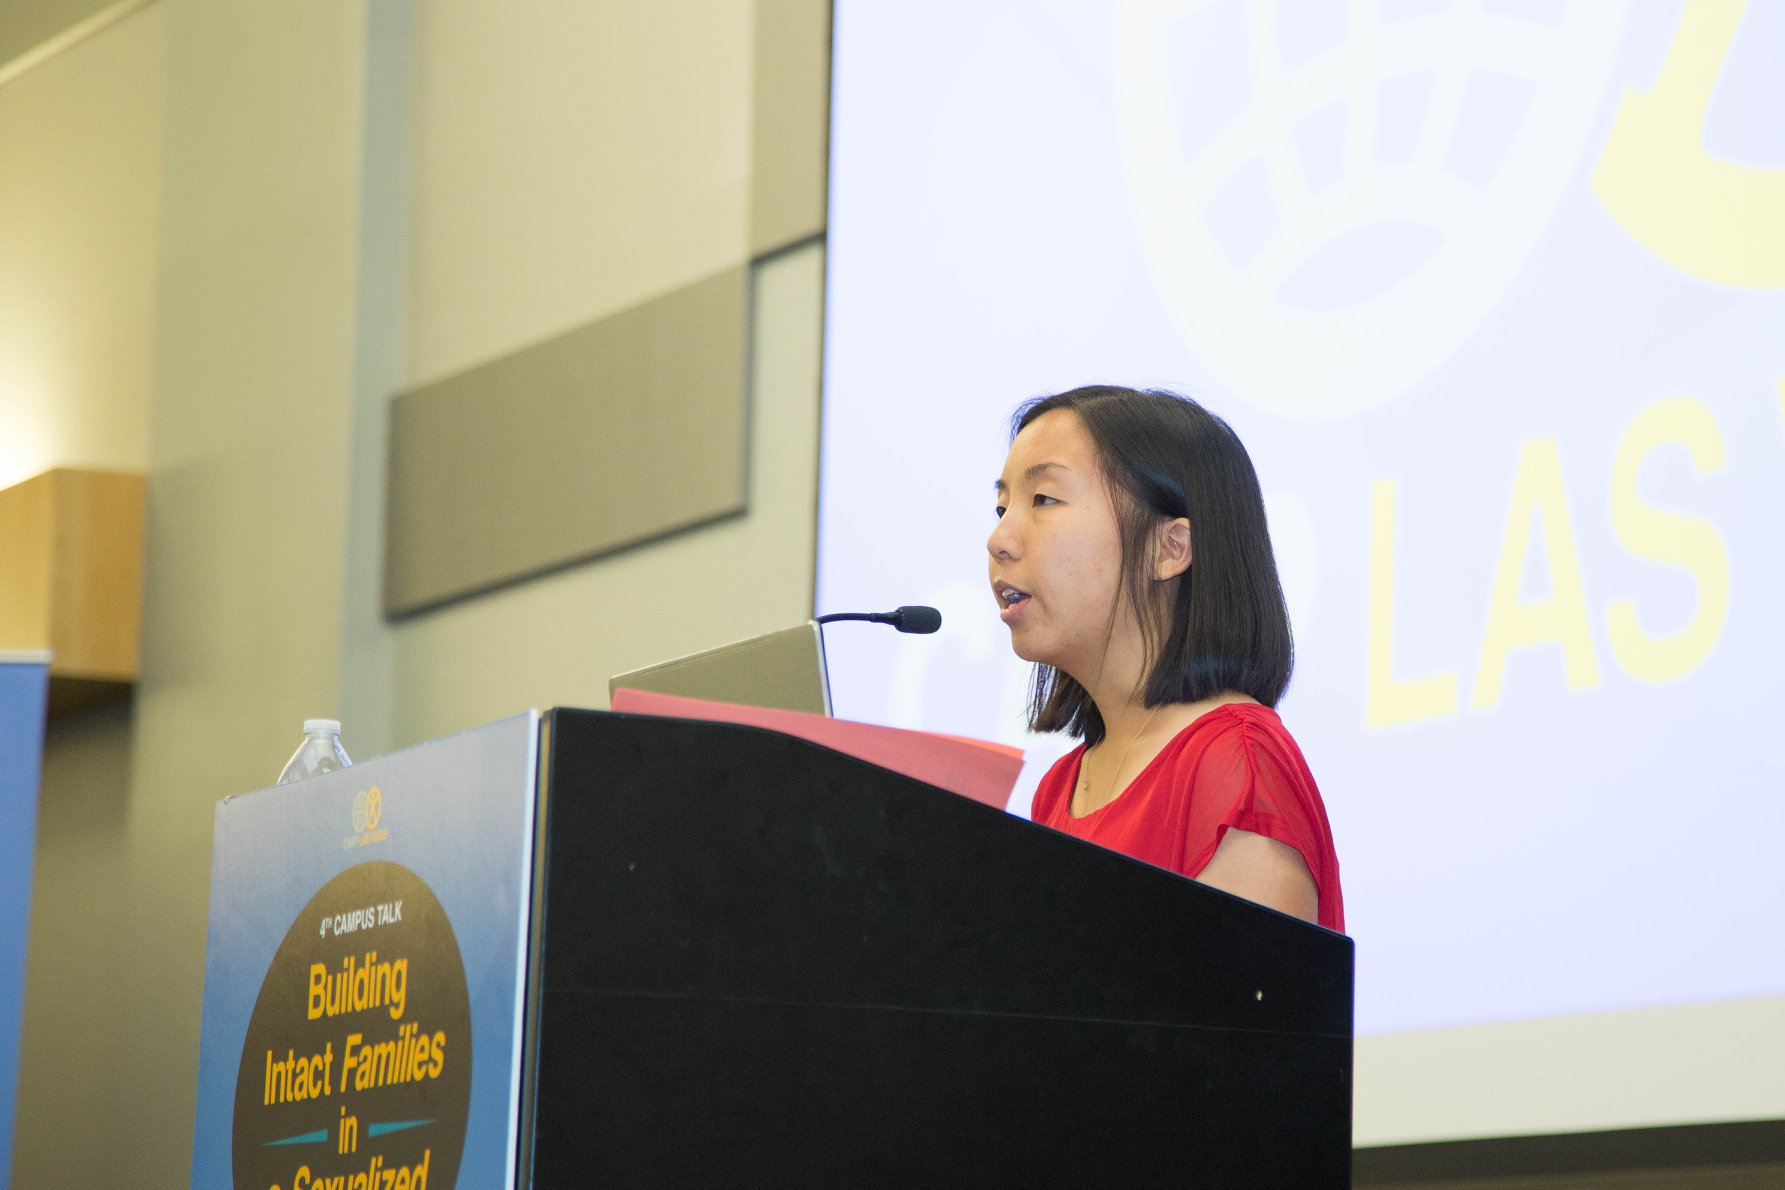 Kailey Teo shared the student perspective.